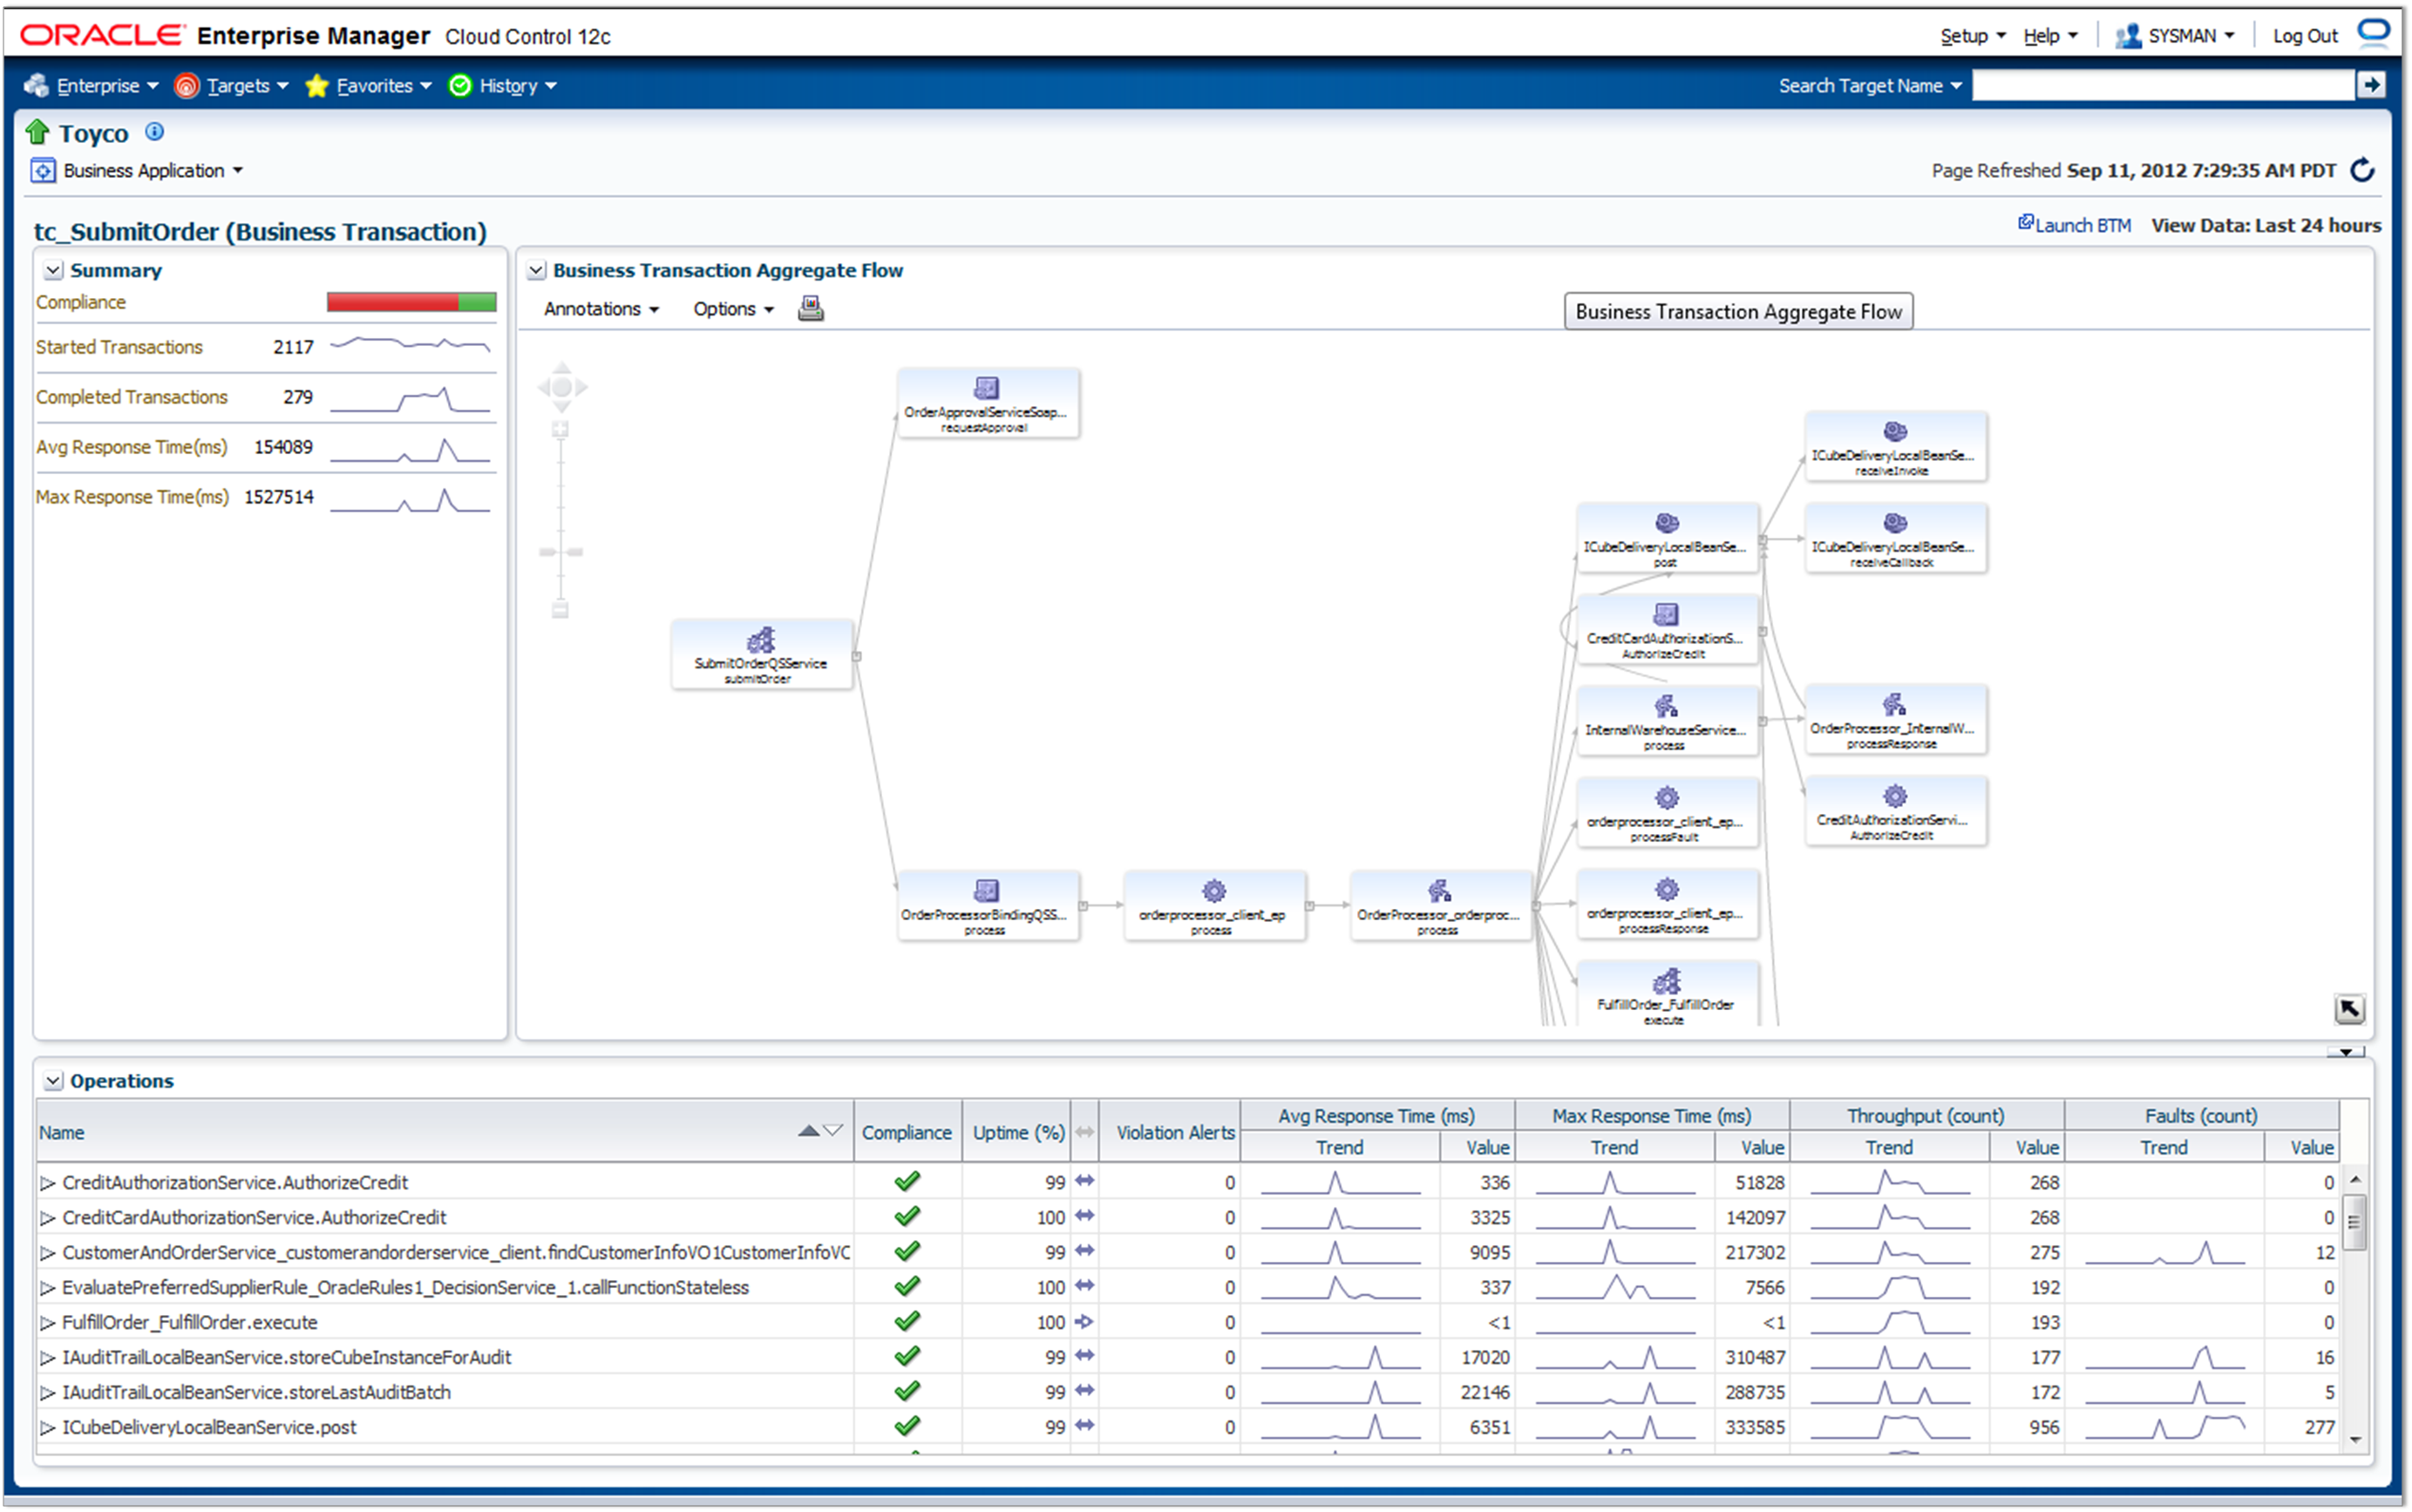 EnterpriseManager12cCloudControl ApplicationPerformanceManagement Figure3.